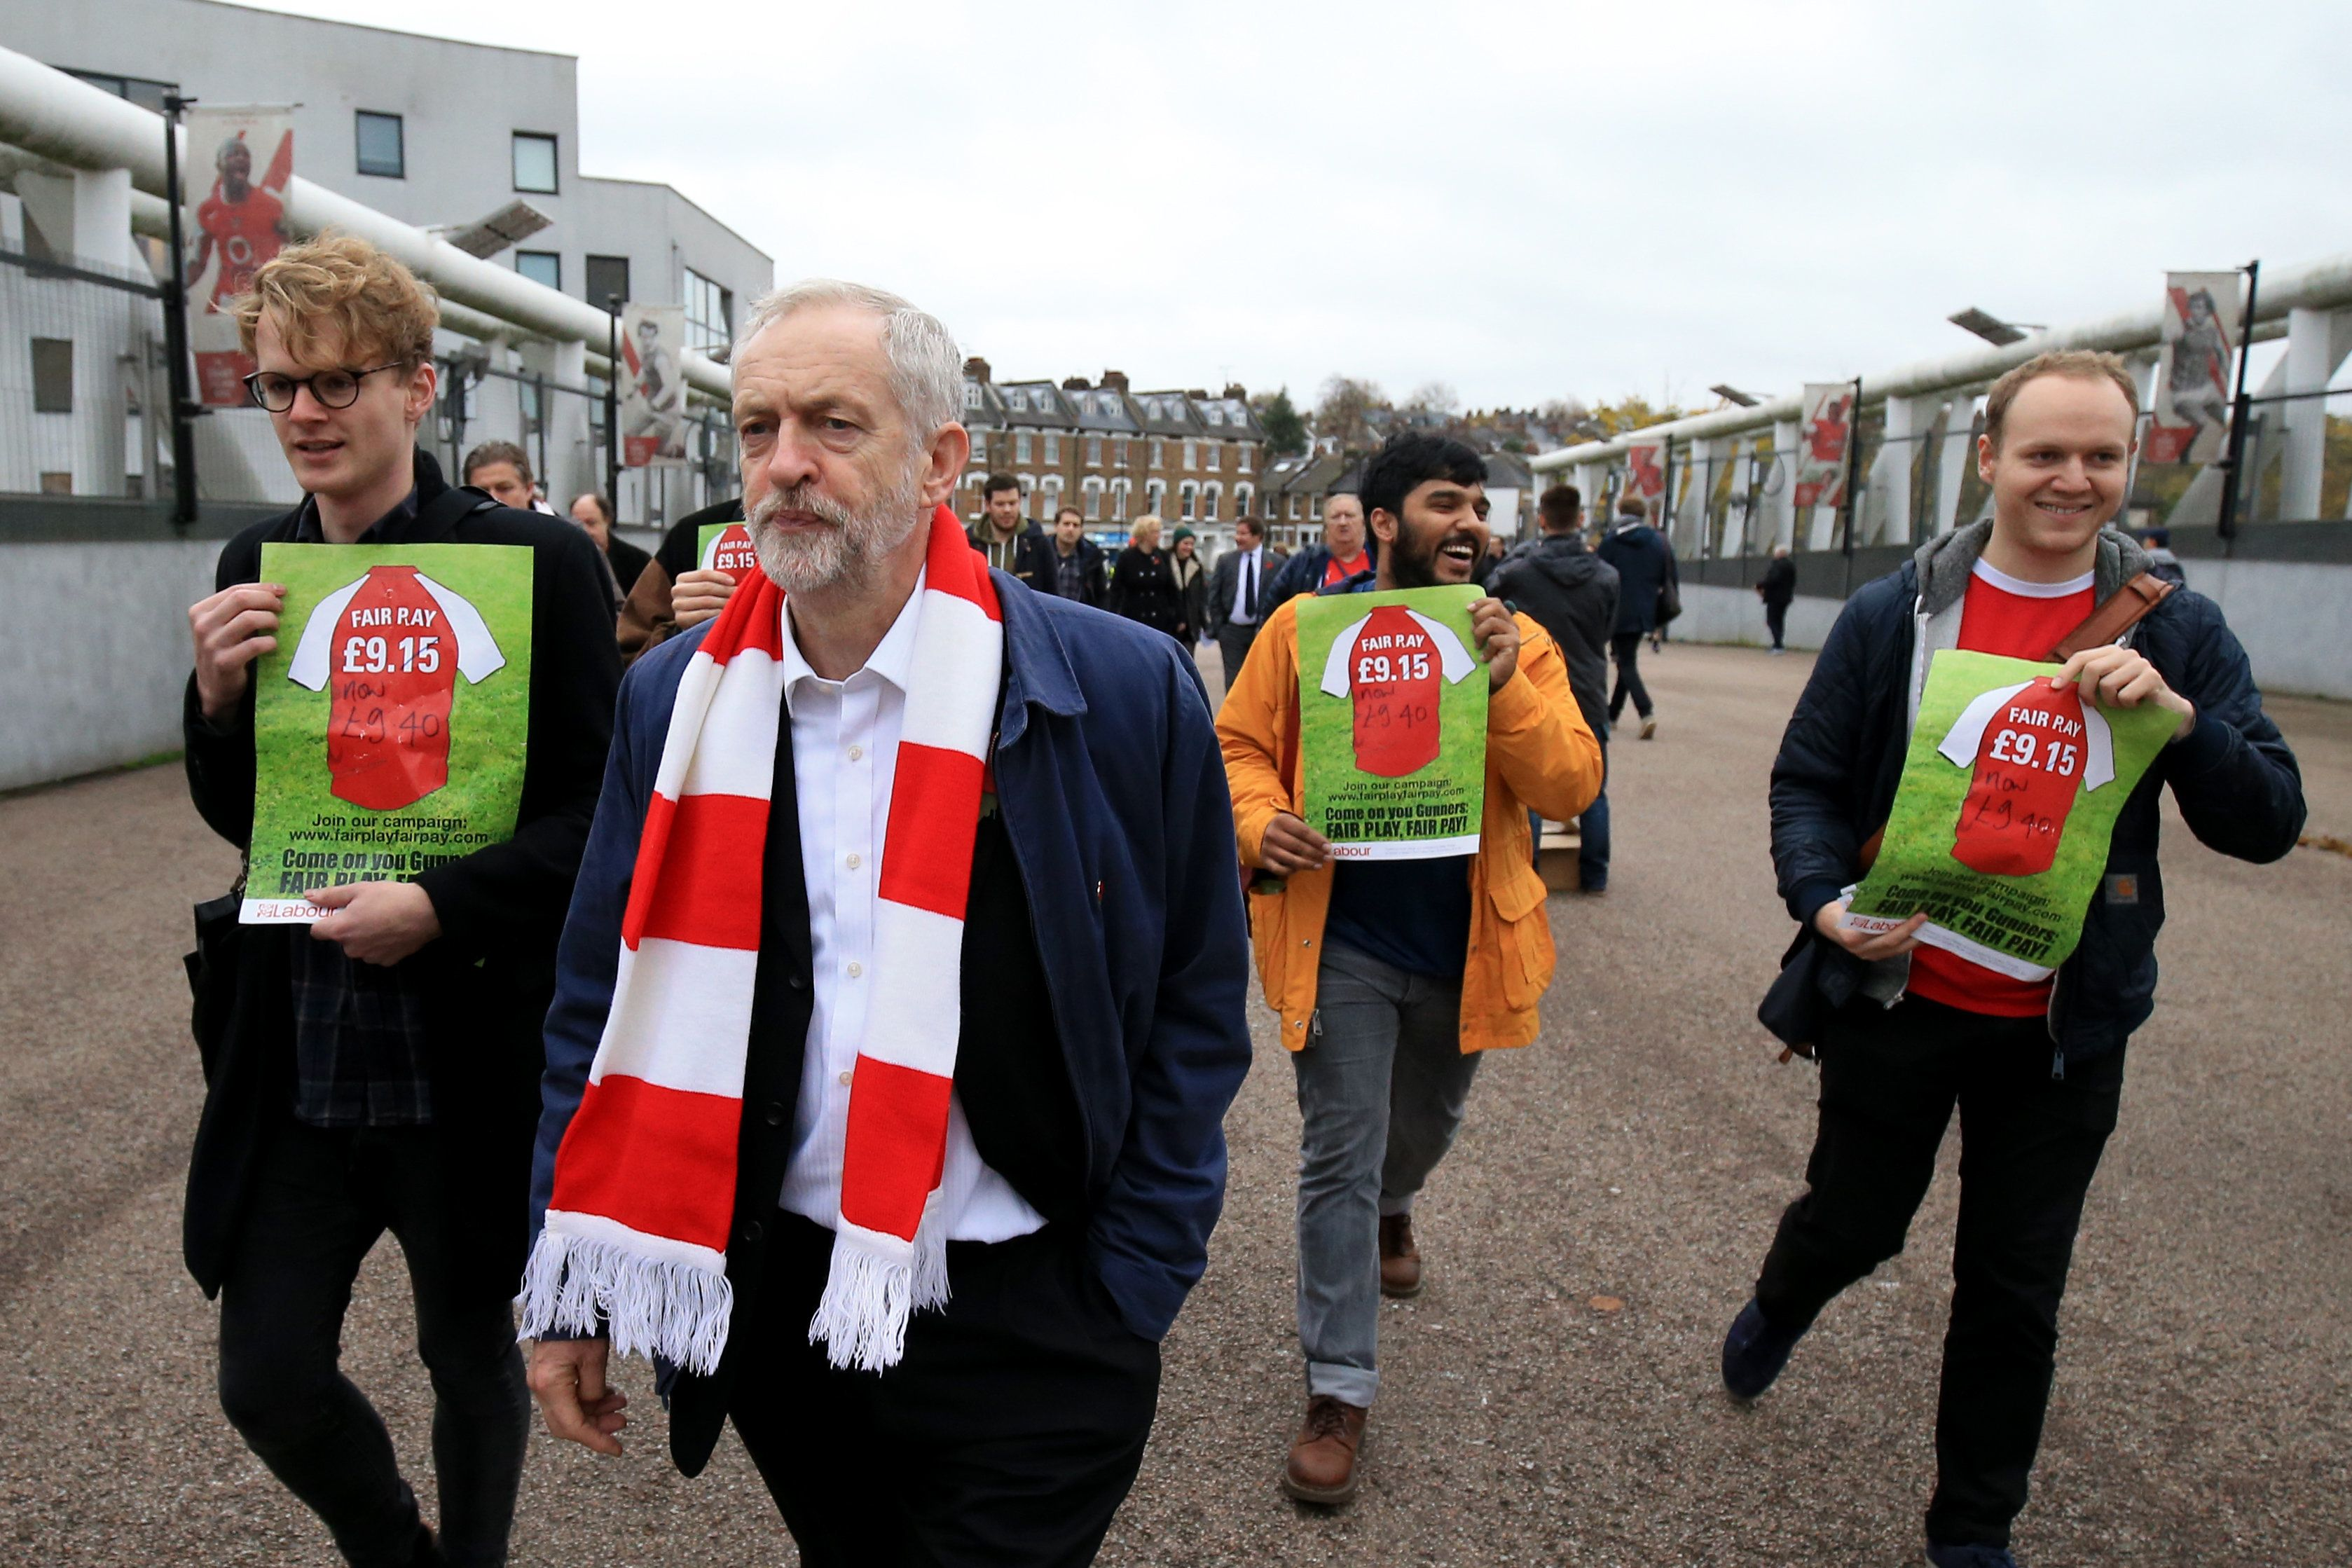 Labour Uses FA Cup Final Day To Pledge Crackdown On Ticket